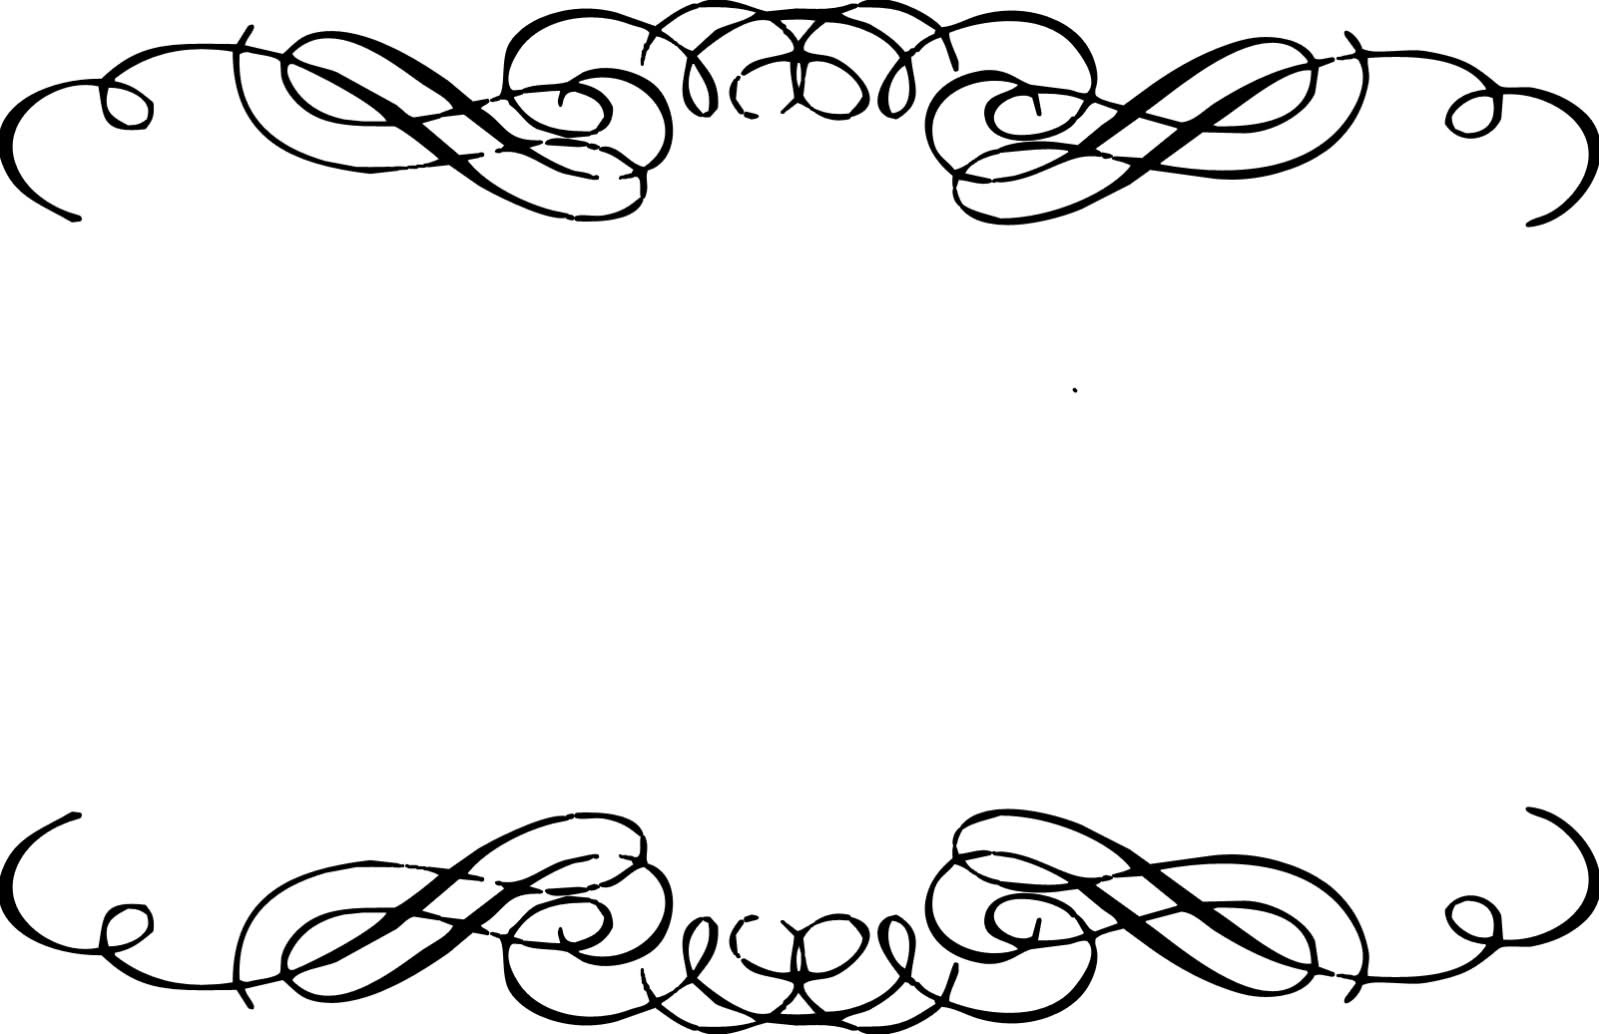 Fancy corner scroll clip art .